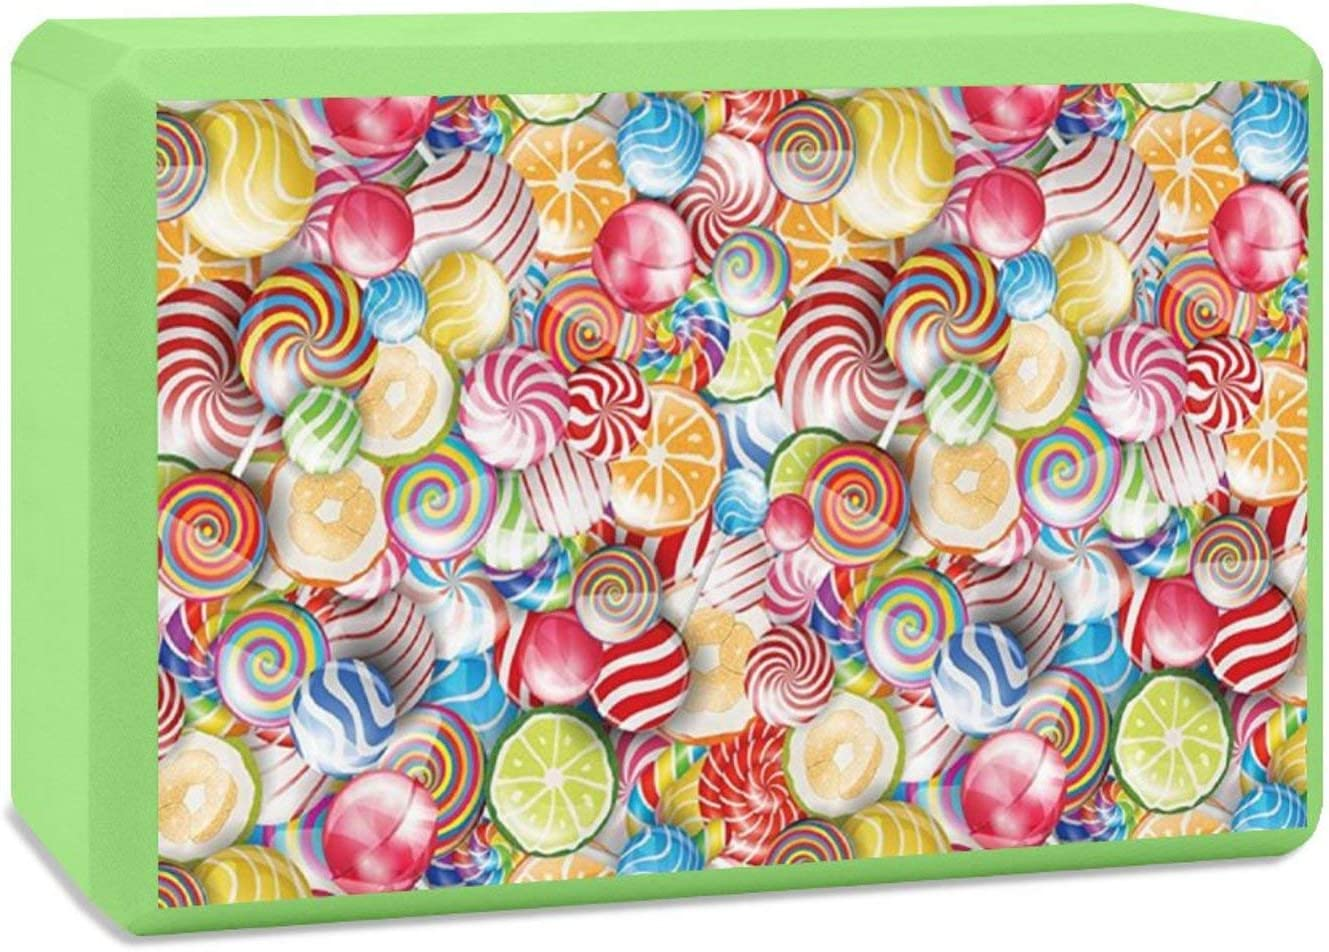 Yoga Block Colorful Luxury goods Spiral All items in the store Sugar Hi Sweets Lightweight Candy EVA